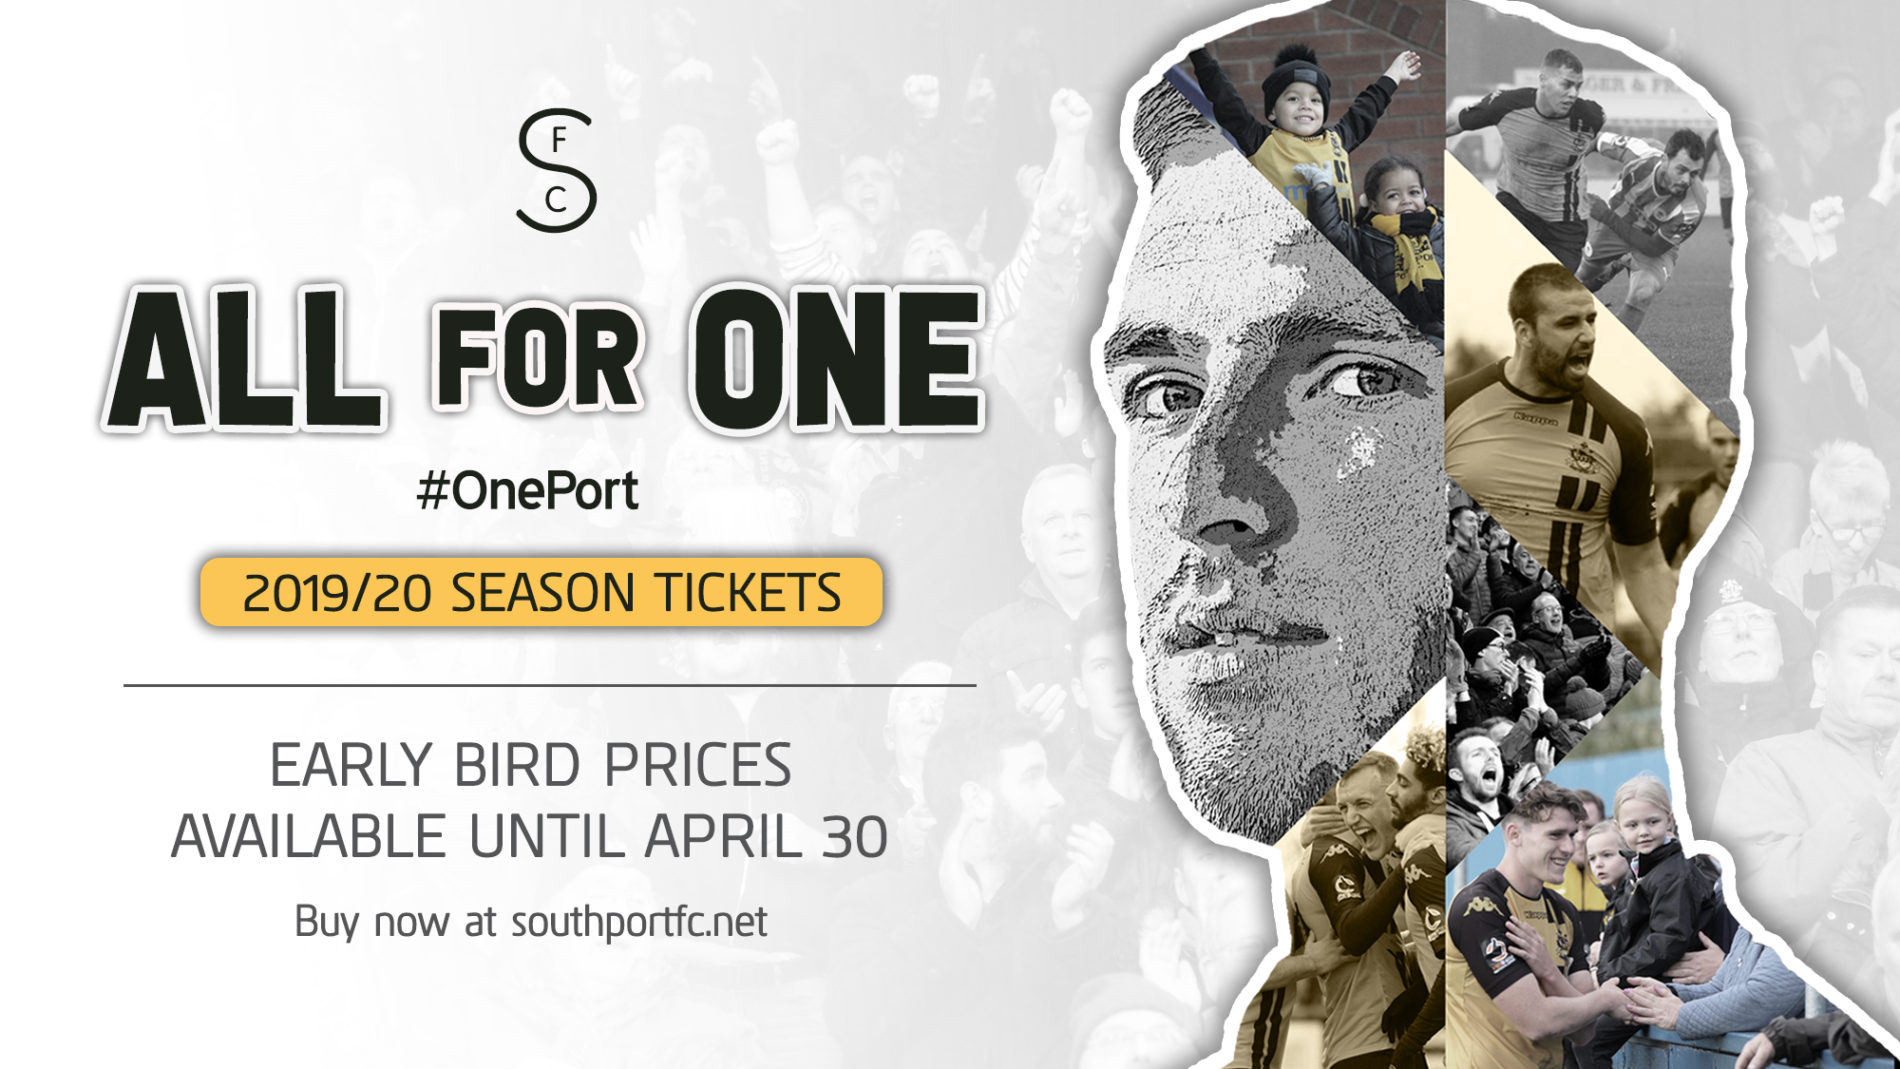 ALL FOR ONE | 2019/20 Season Tickets